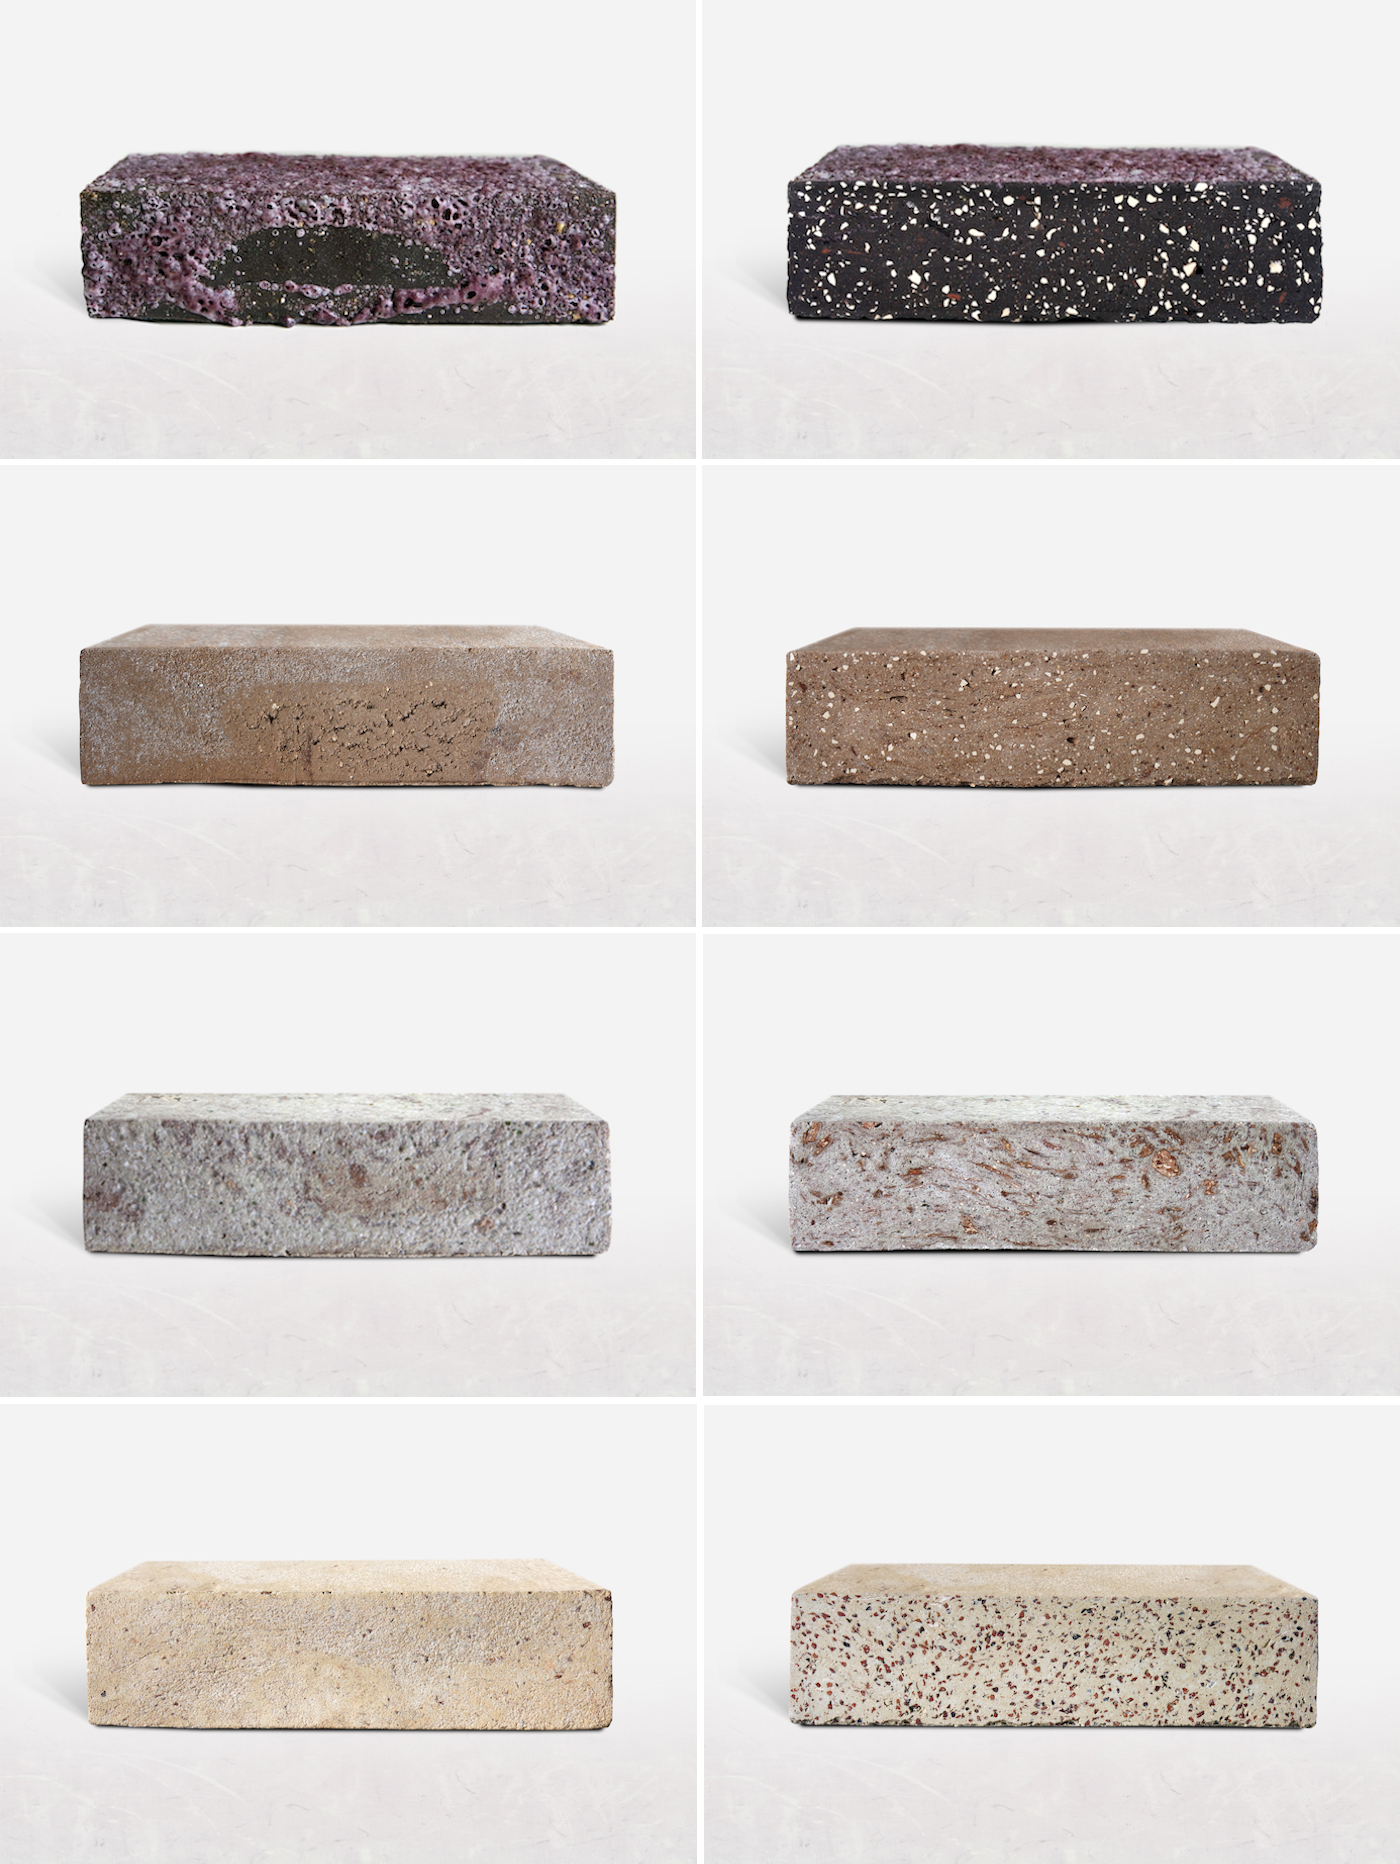 """""""Raw"""" and """"sliced"""" versions of the Aubergine, Caramel, Mushroom, and Nougat bricks (click to enlarge)"""